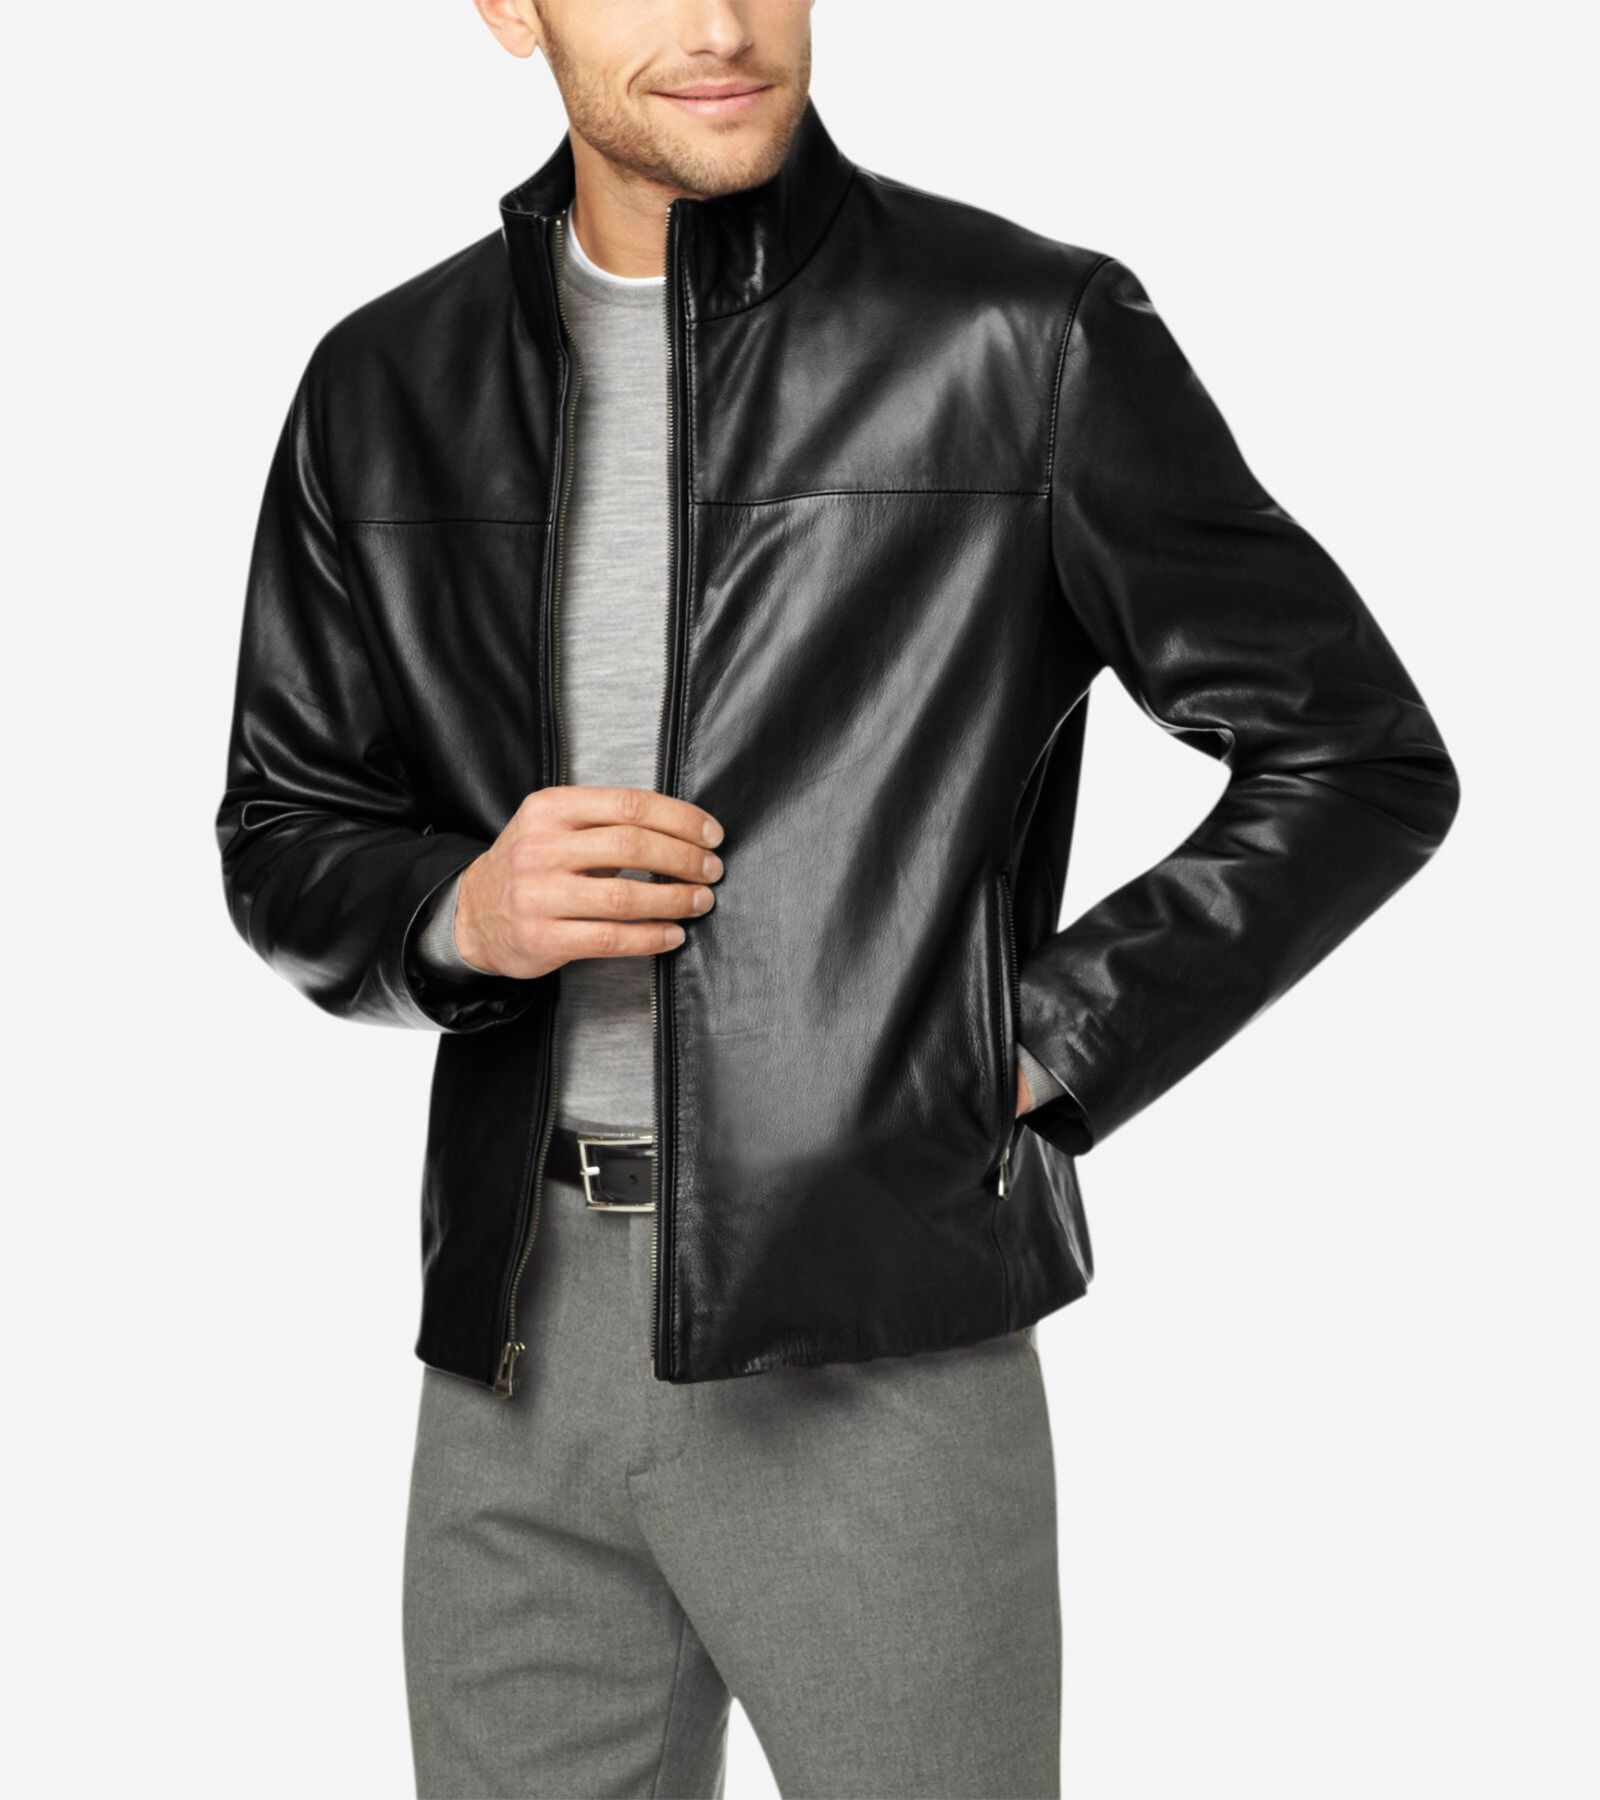 Washed Leather Jacket in Black Leather